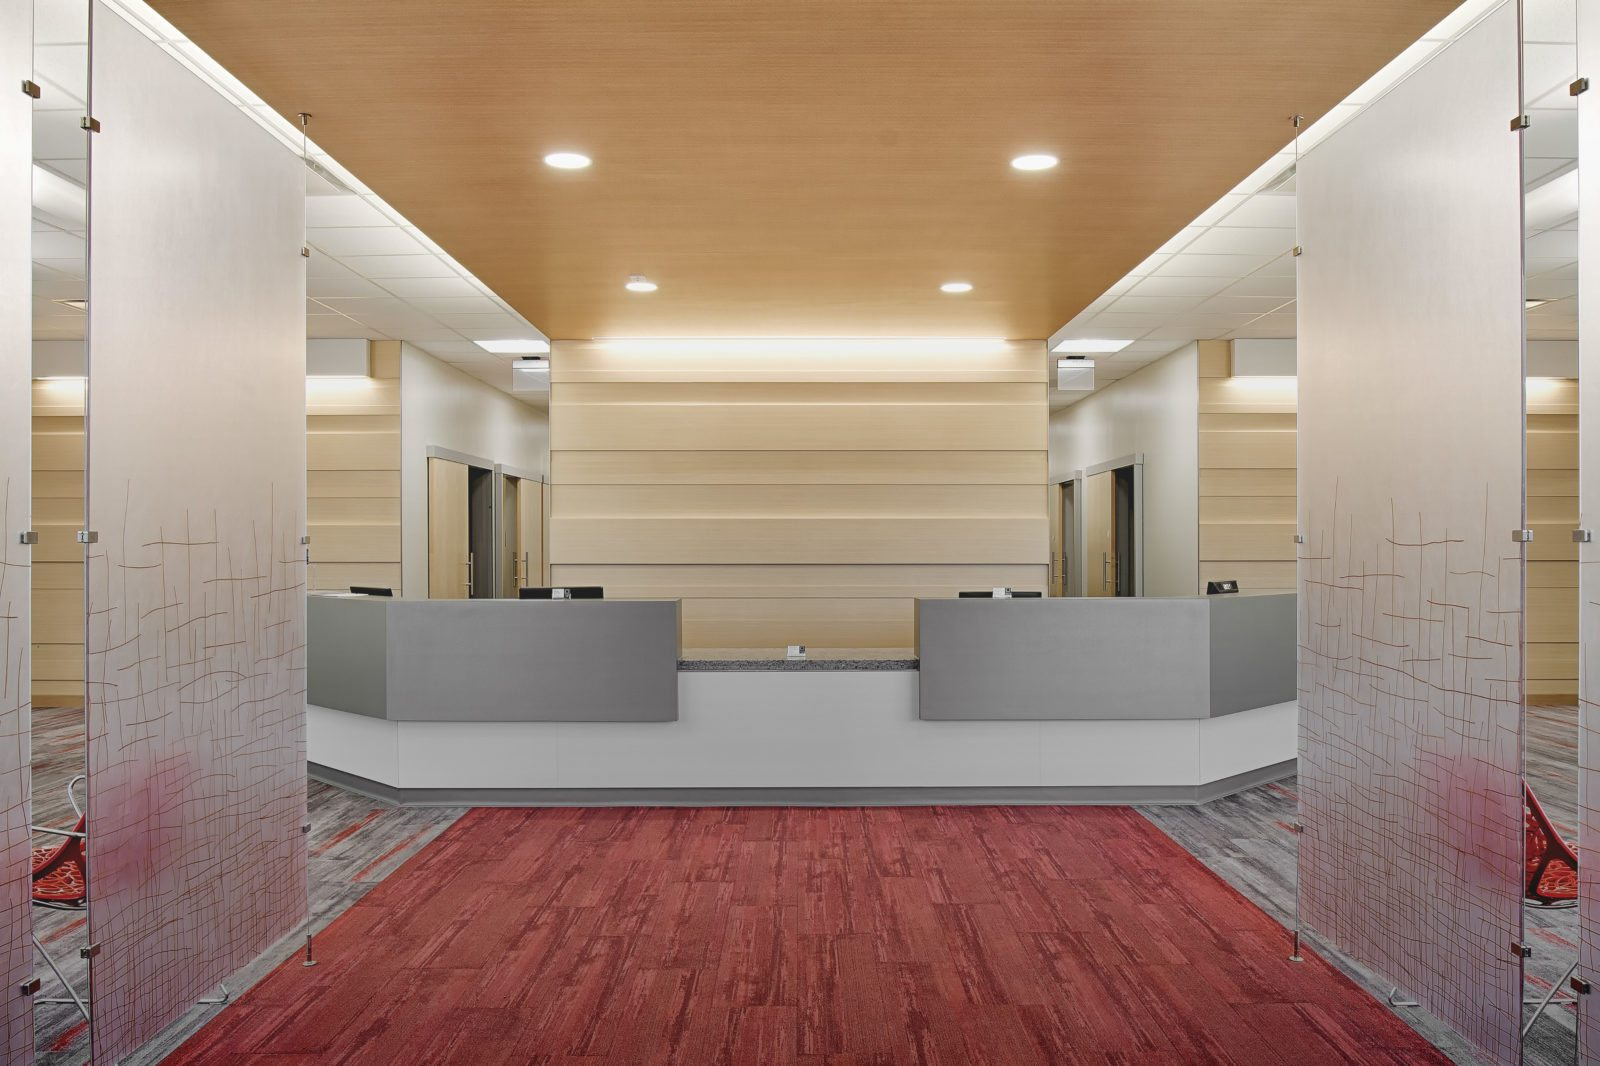 showroom amwnj interior hsr unilet bzdet designing bangalore sector collegeabove layout design see institutes inifd institute of opposite and nift fashion international